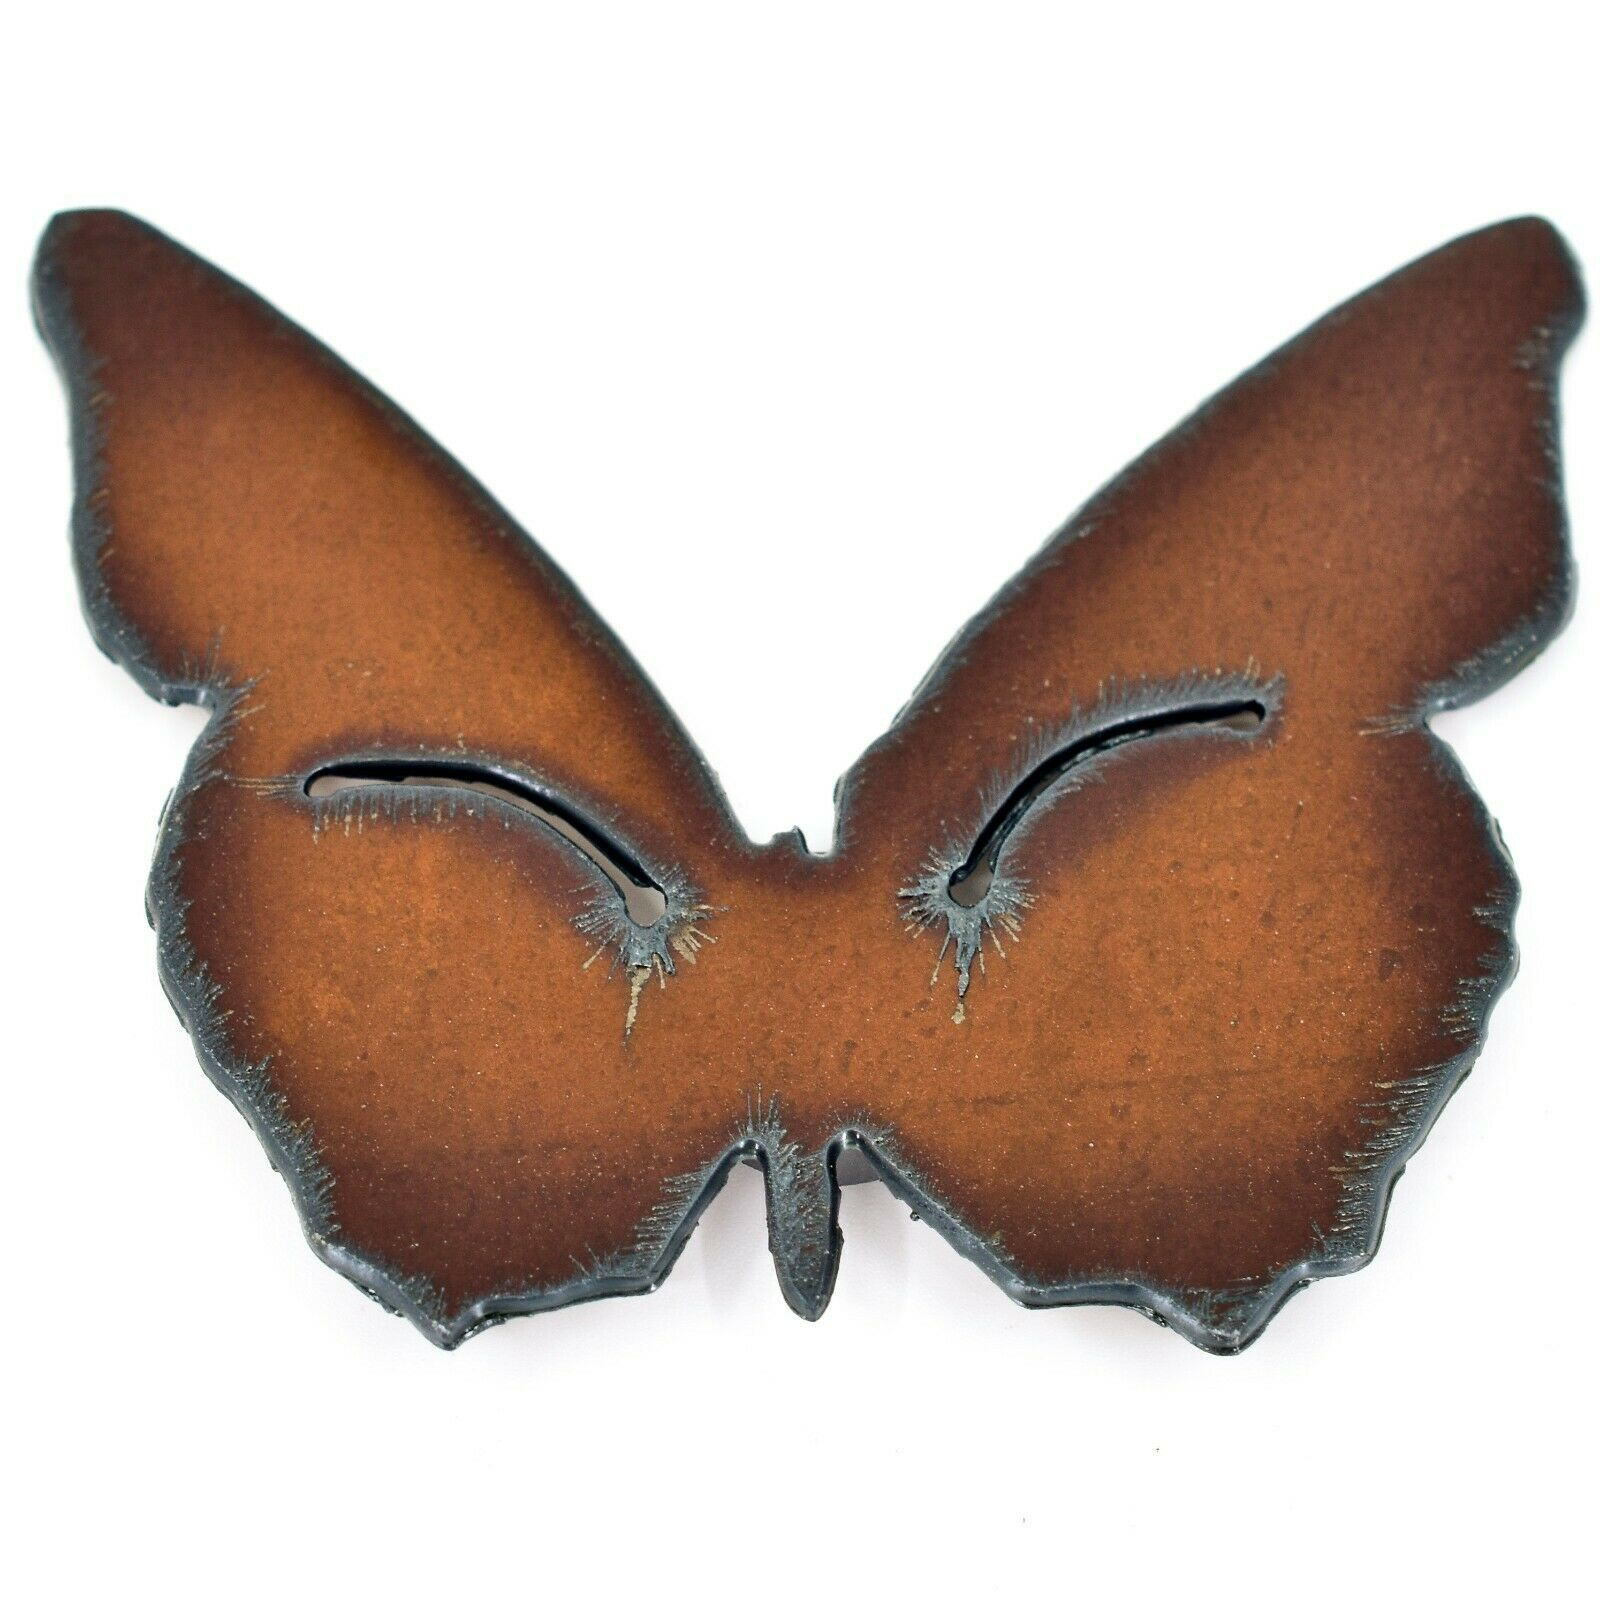 "Rustic Rusted Patina Iron Metal Cutout Butterfly 3"" Refrigerator Fridge Magnet"